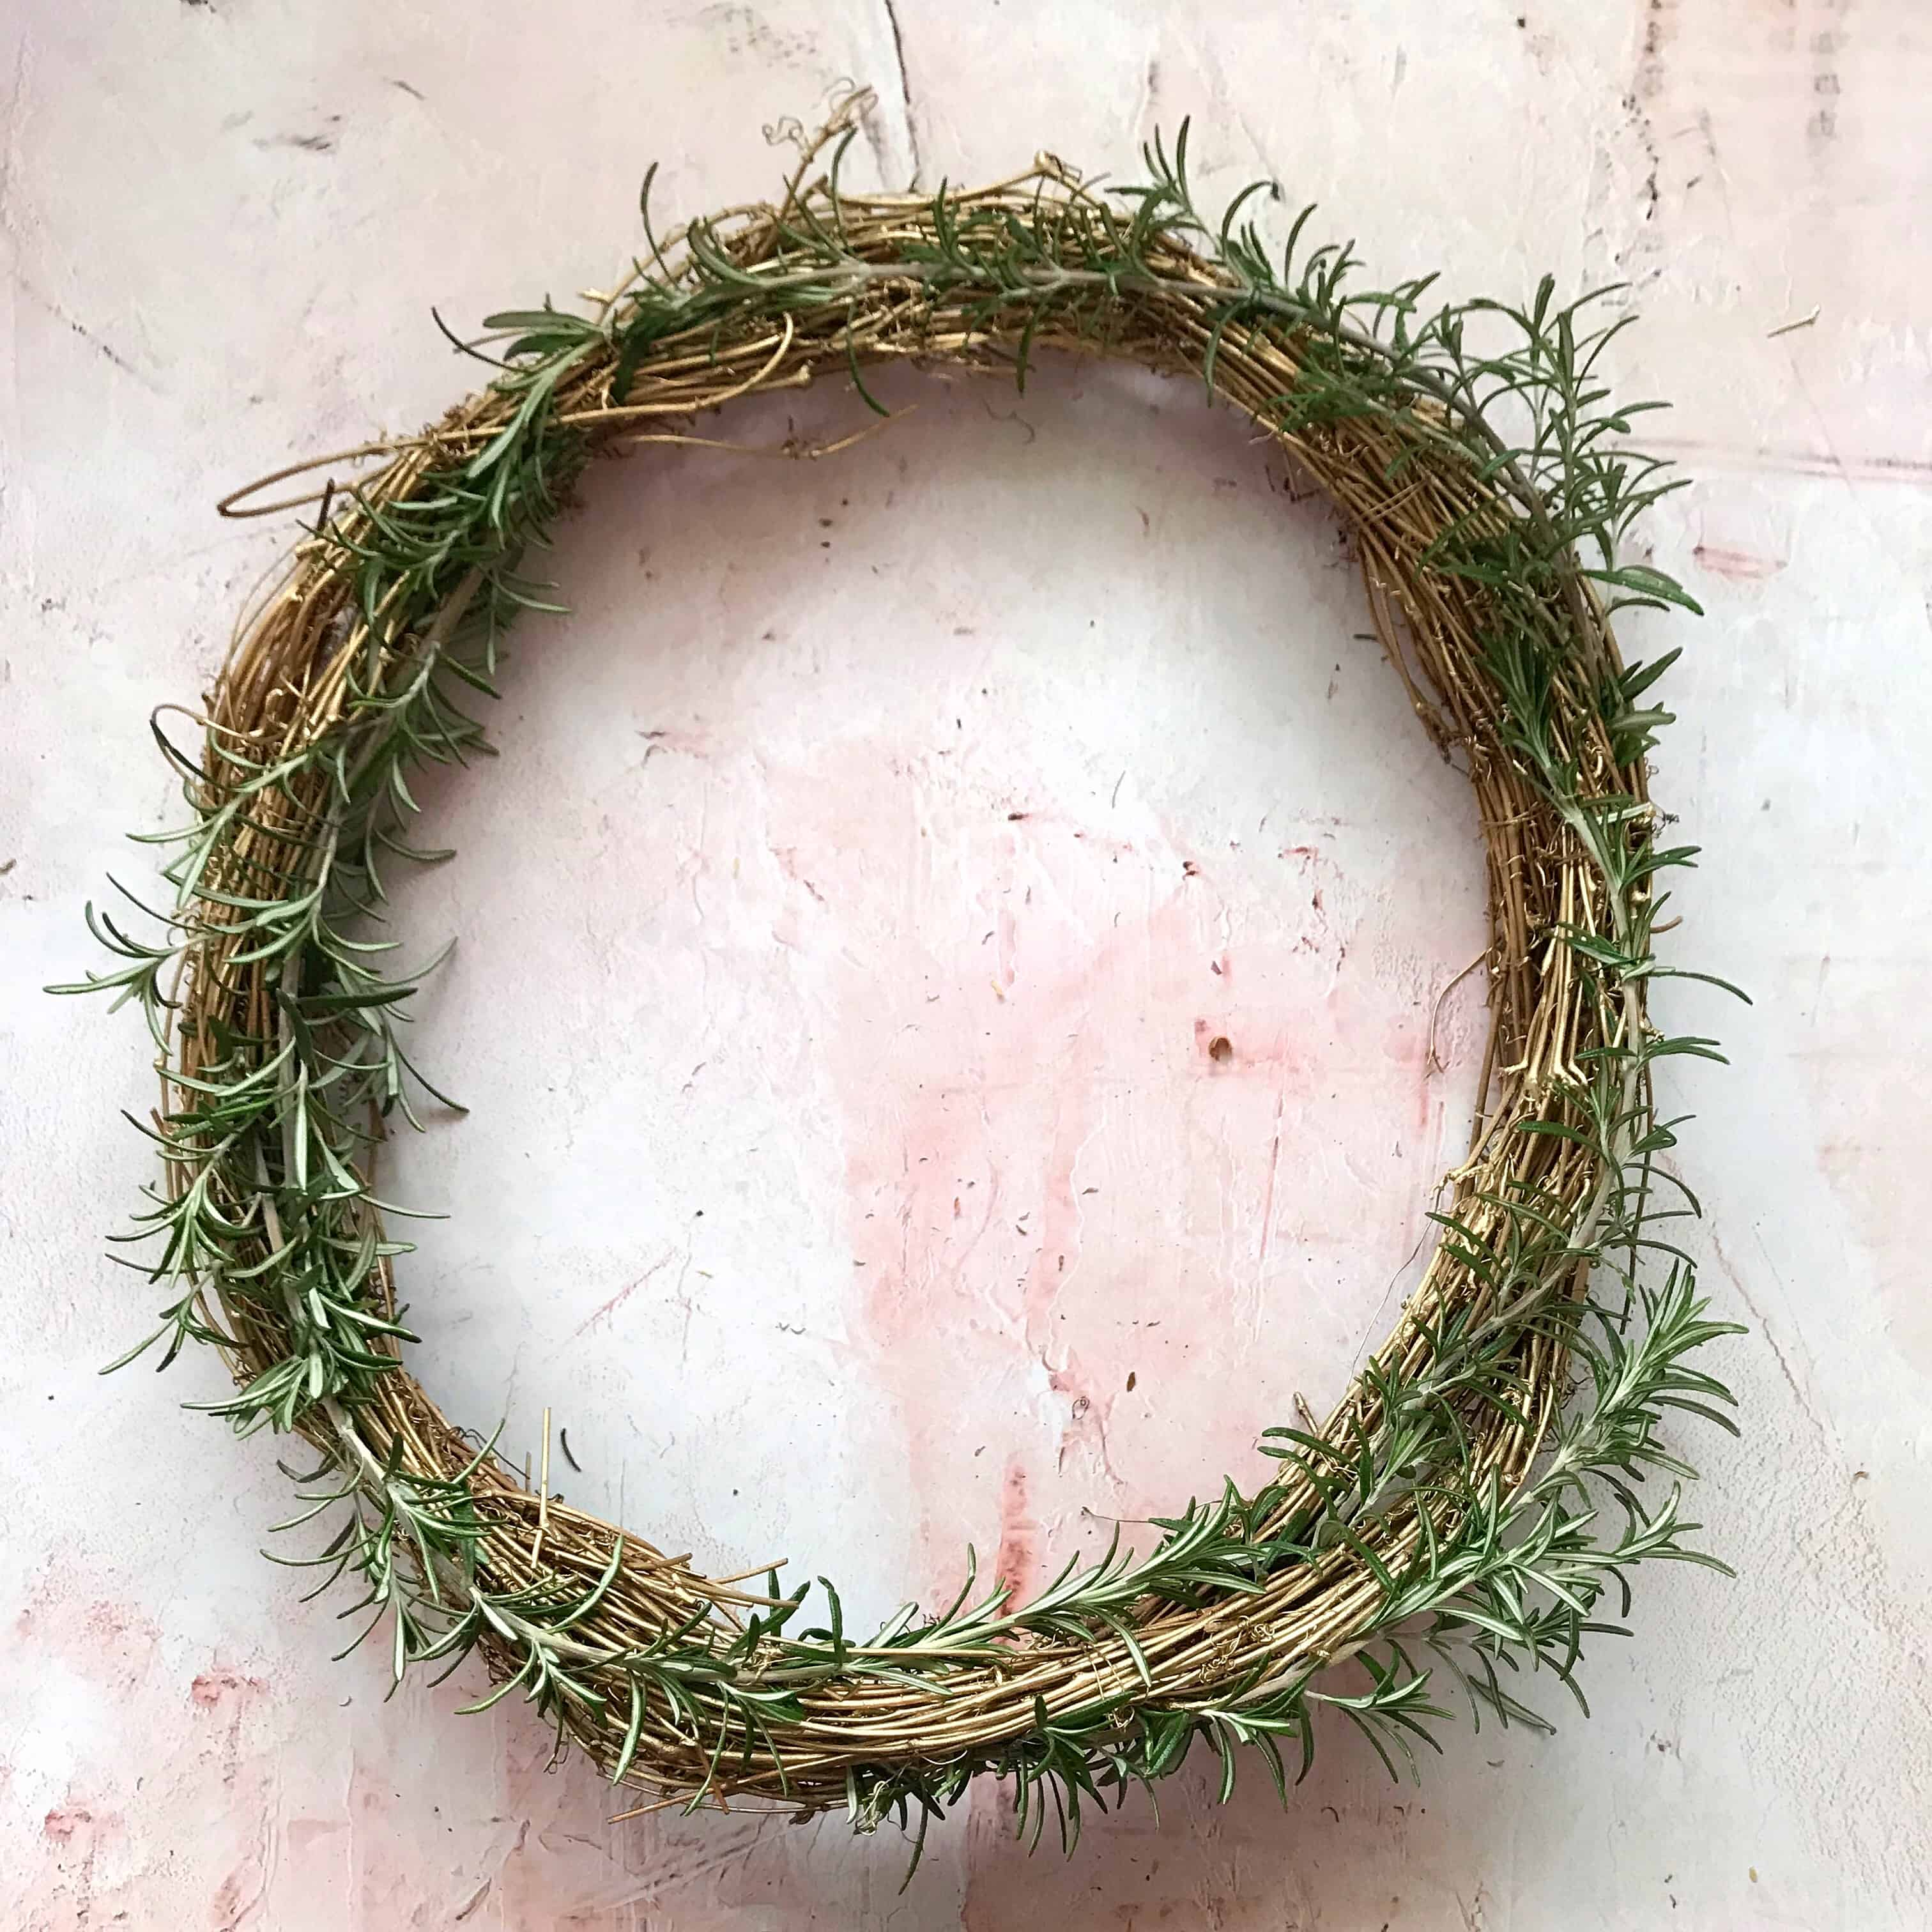 Step 3 to make an easy metallic wreath - attach greenery